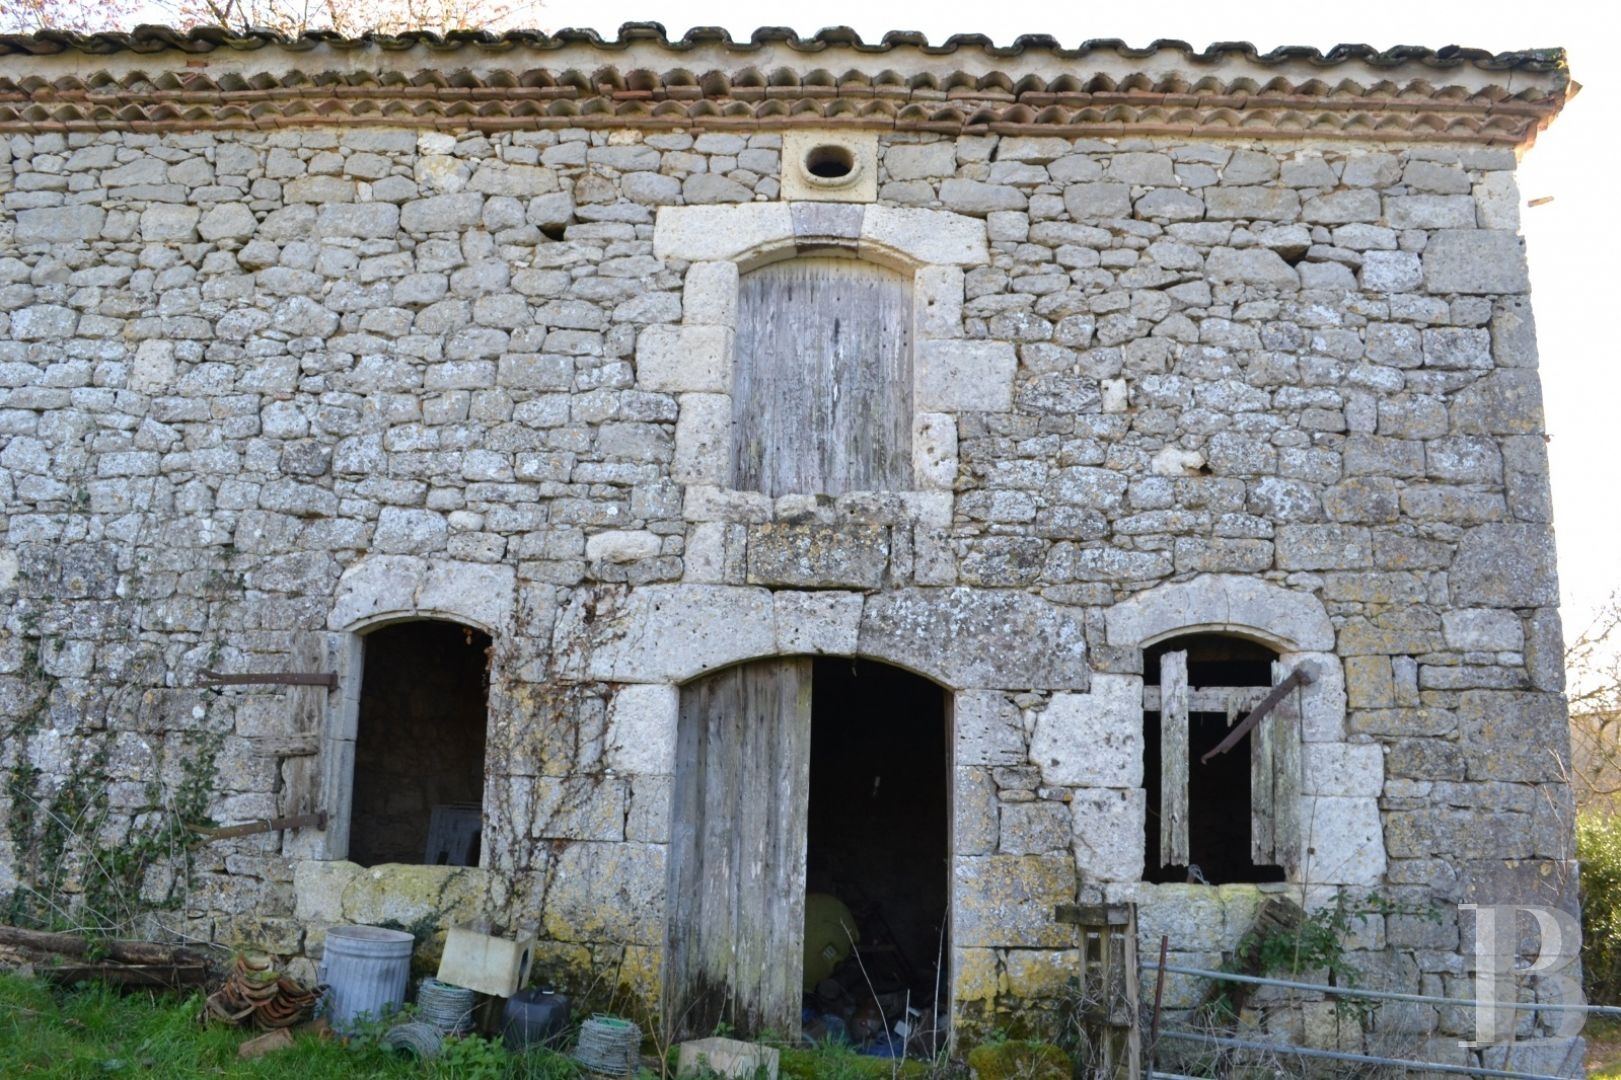 property for sale France aquitaine stronghold house - 7 zoom